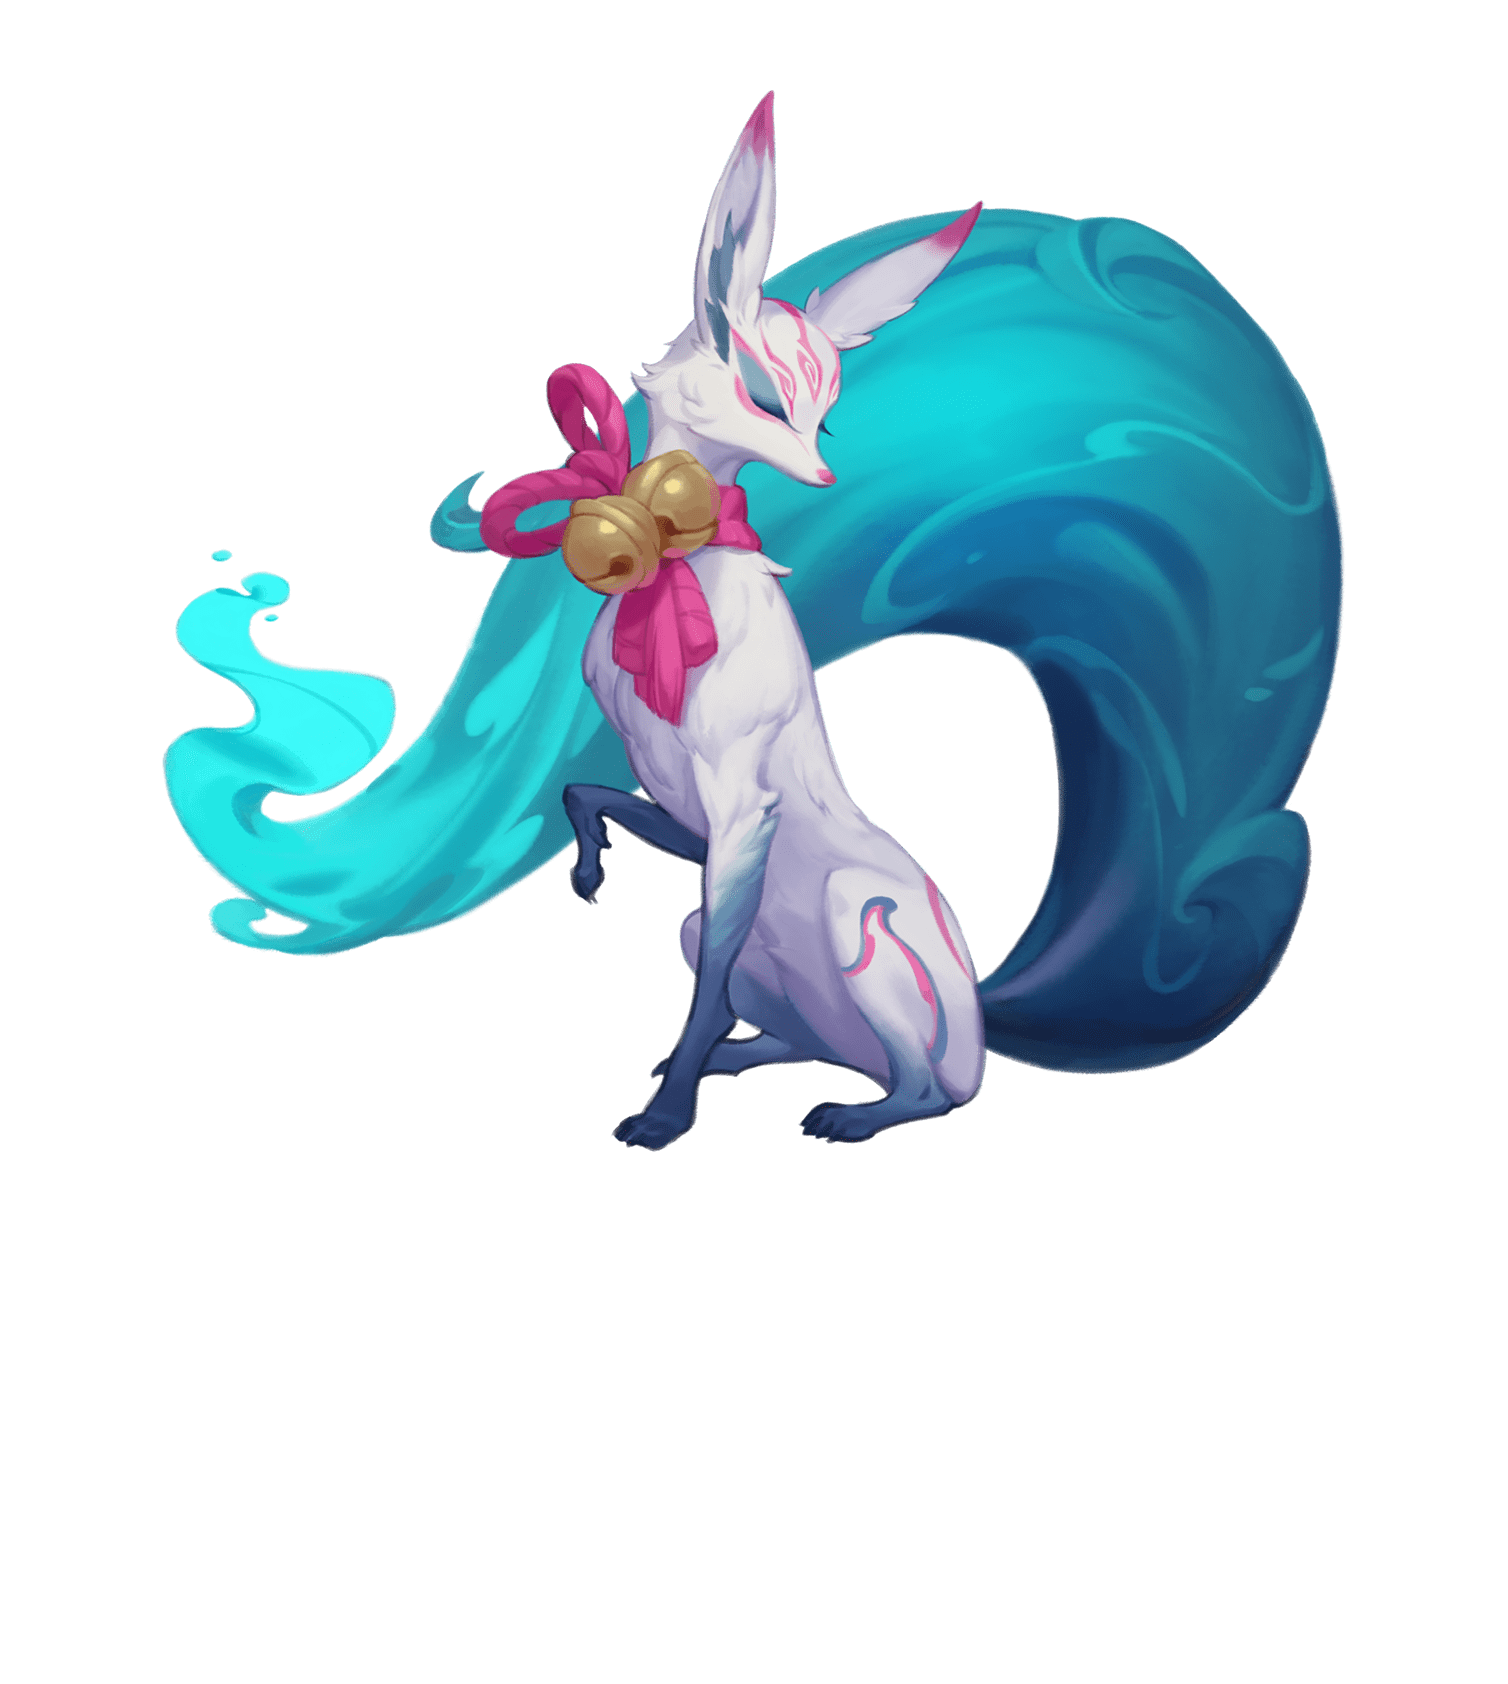 ahri mystery fox neutral - Full decision trees of all spirit blossom routes, art, and more!